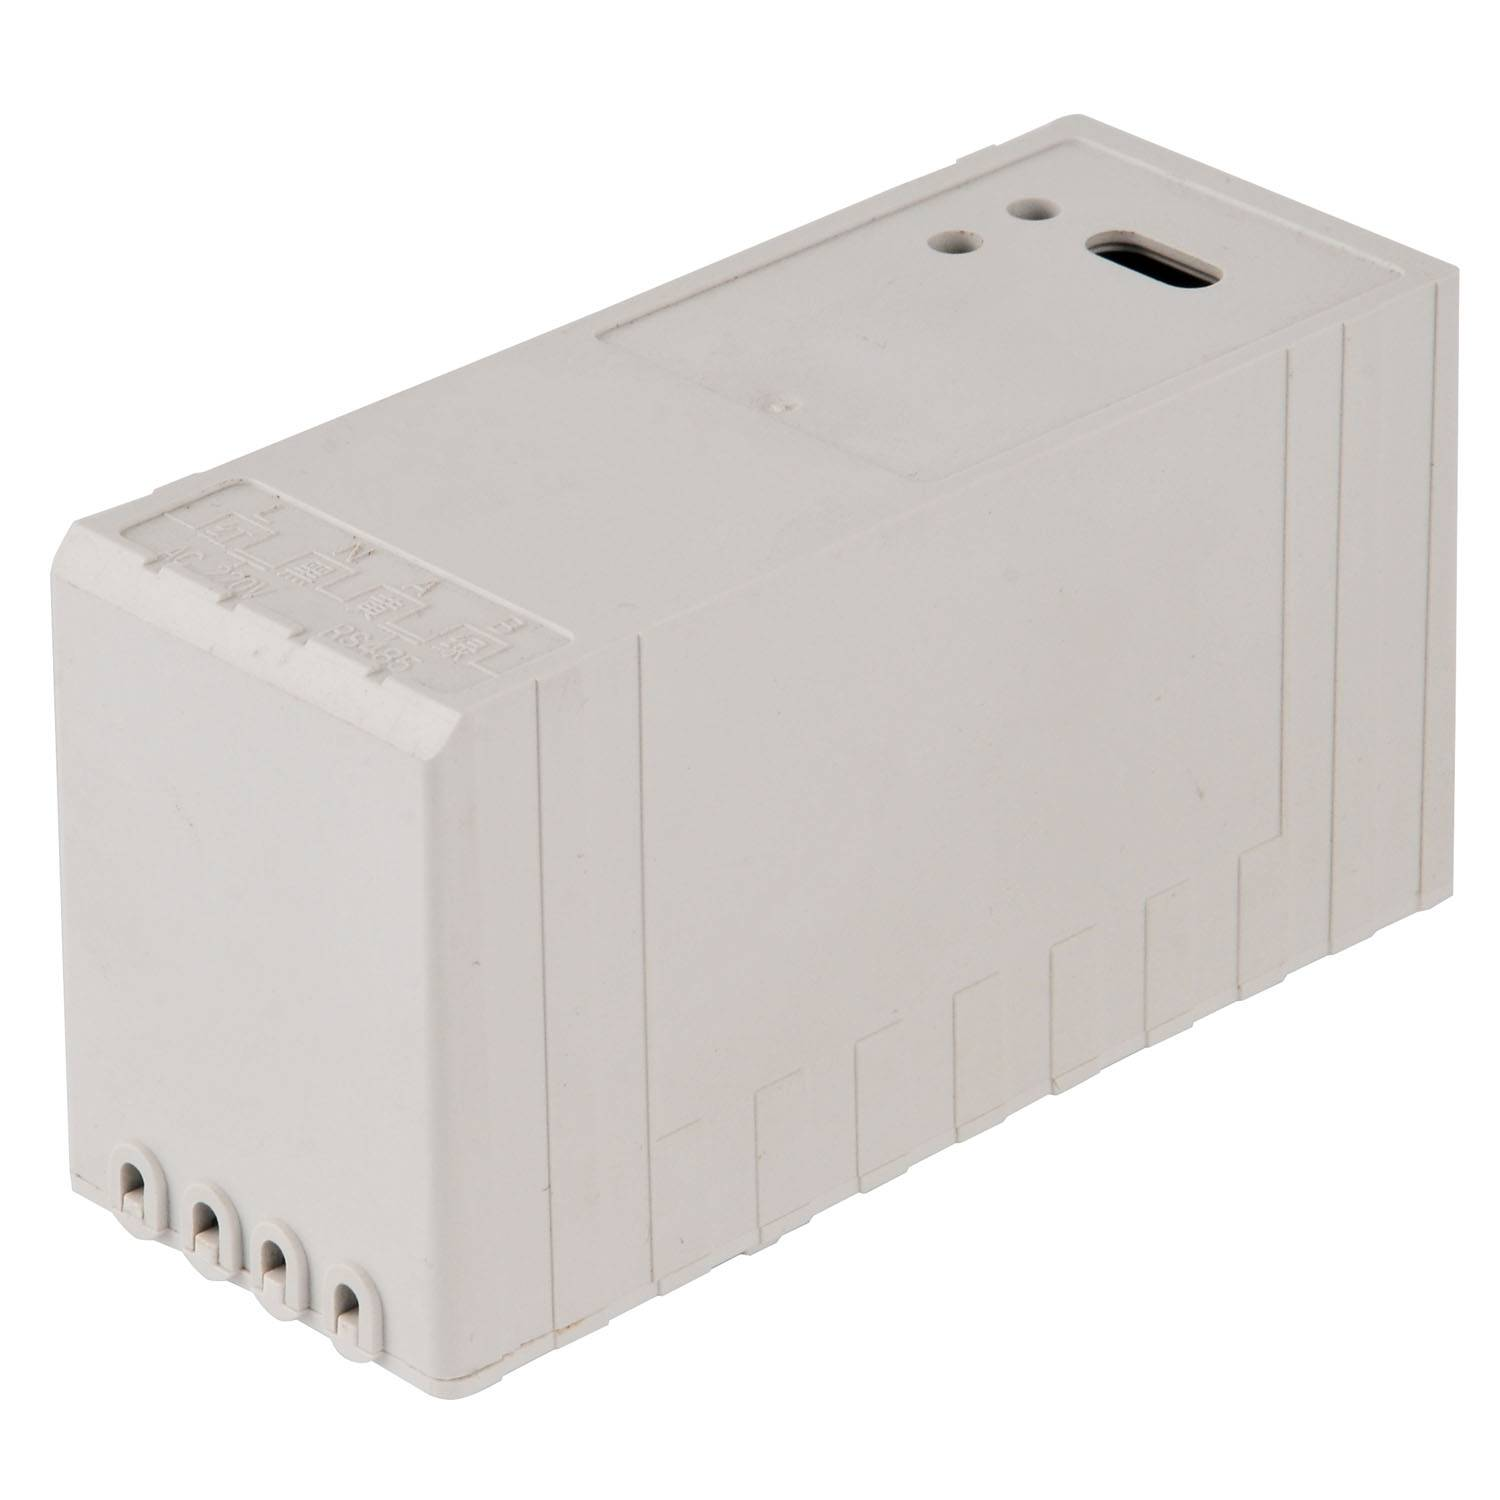 C048 fire proof single phase electrical enclosures